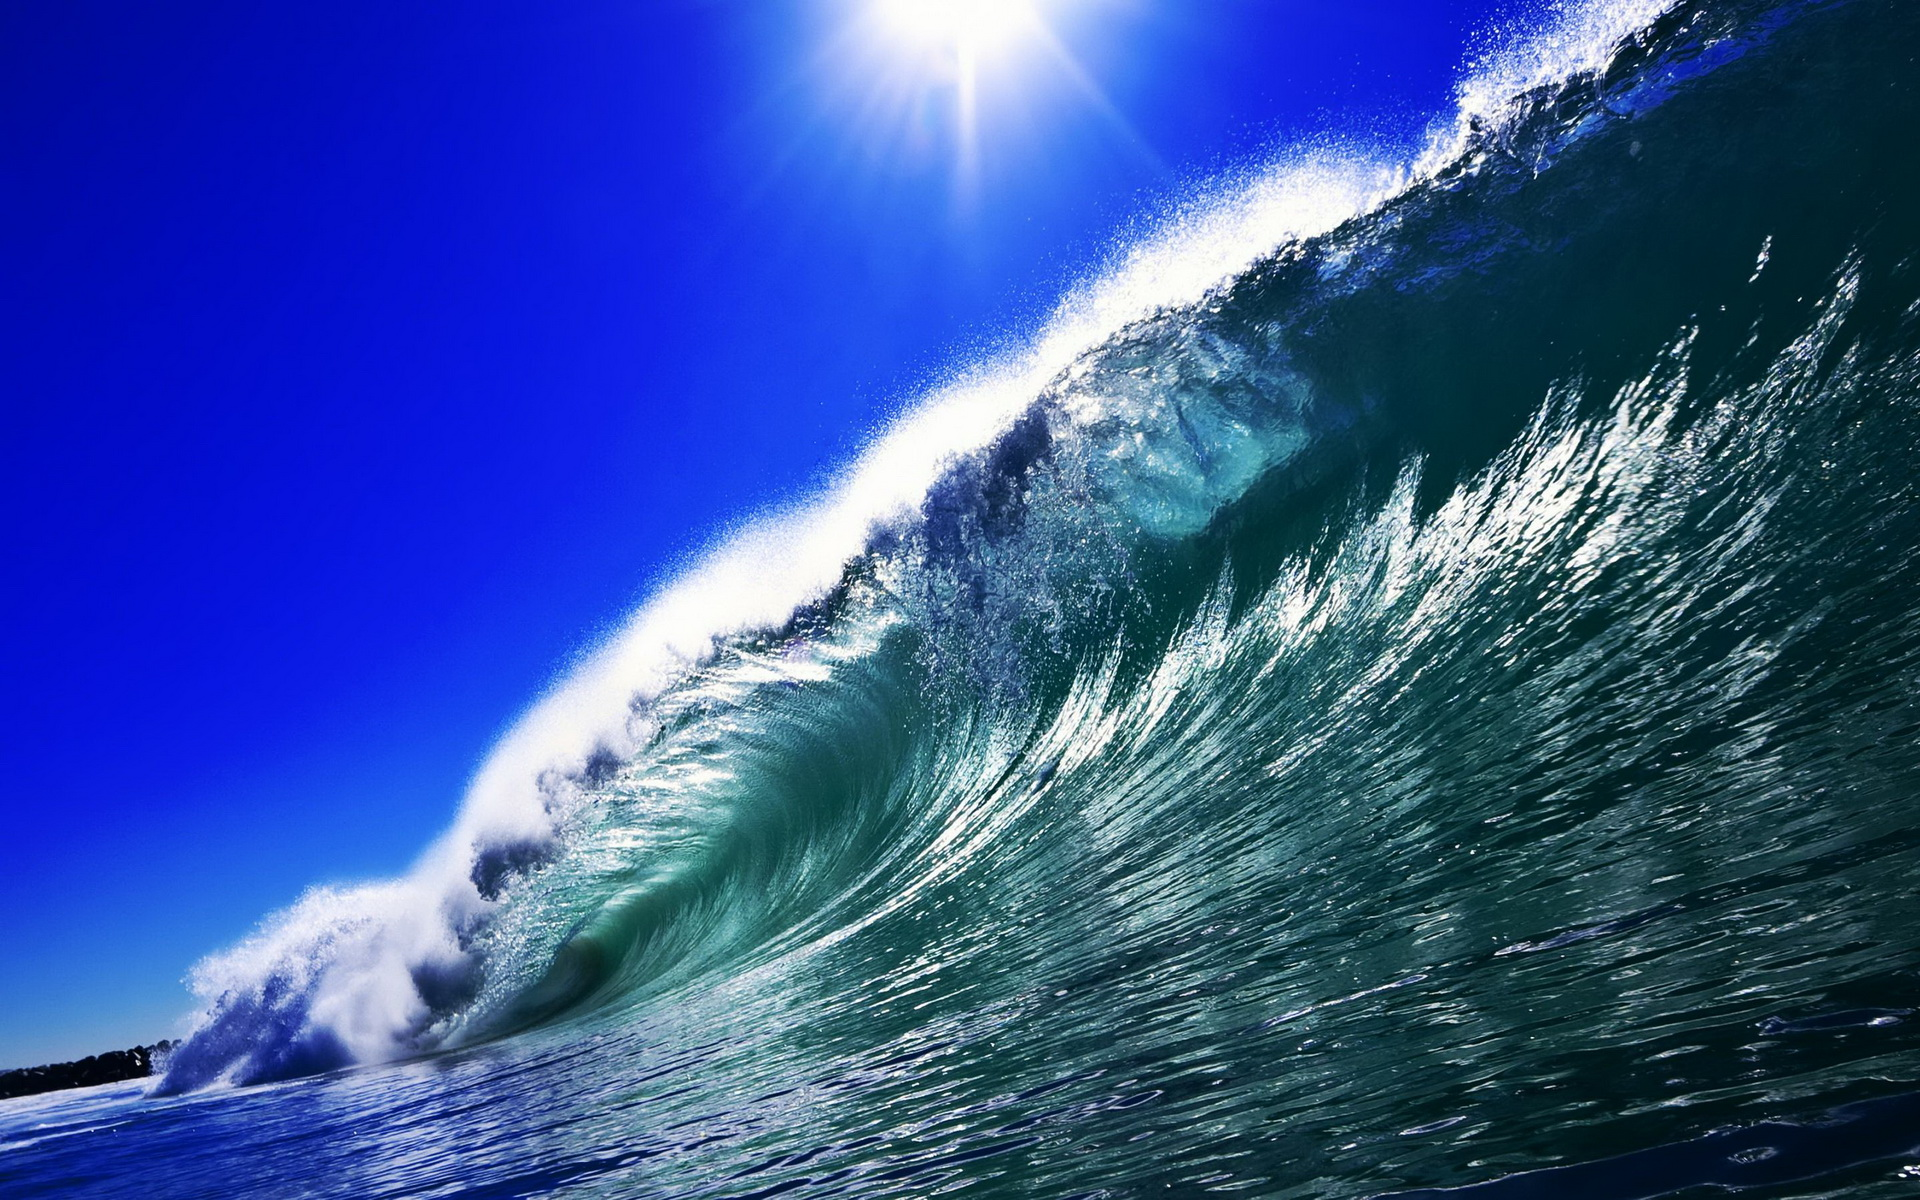 Catch The Wave Surf S Up Hd Wallpaper Background Image 1920x1200 Id 424973 Wallpaper Abyss